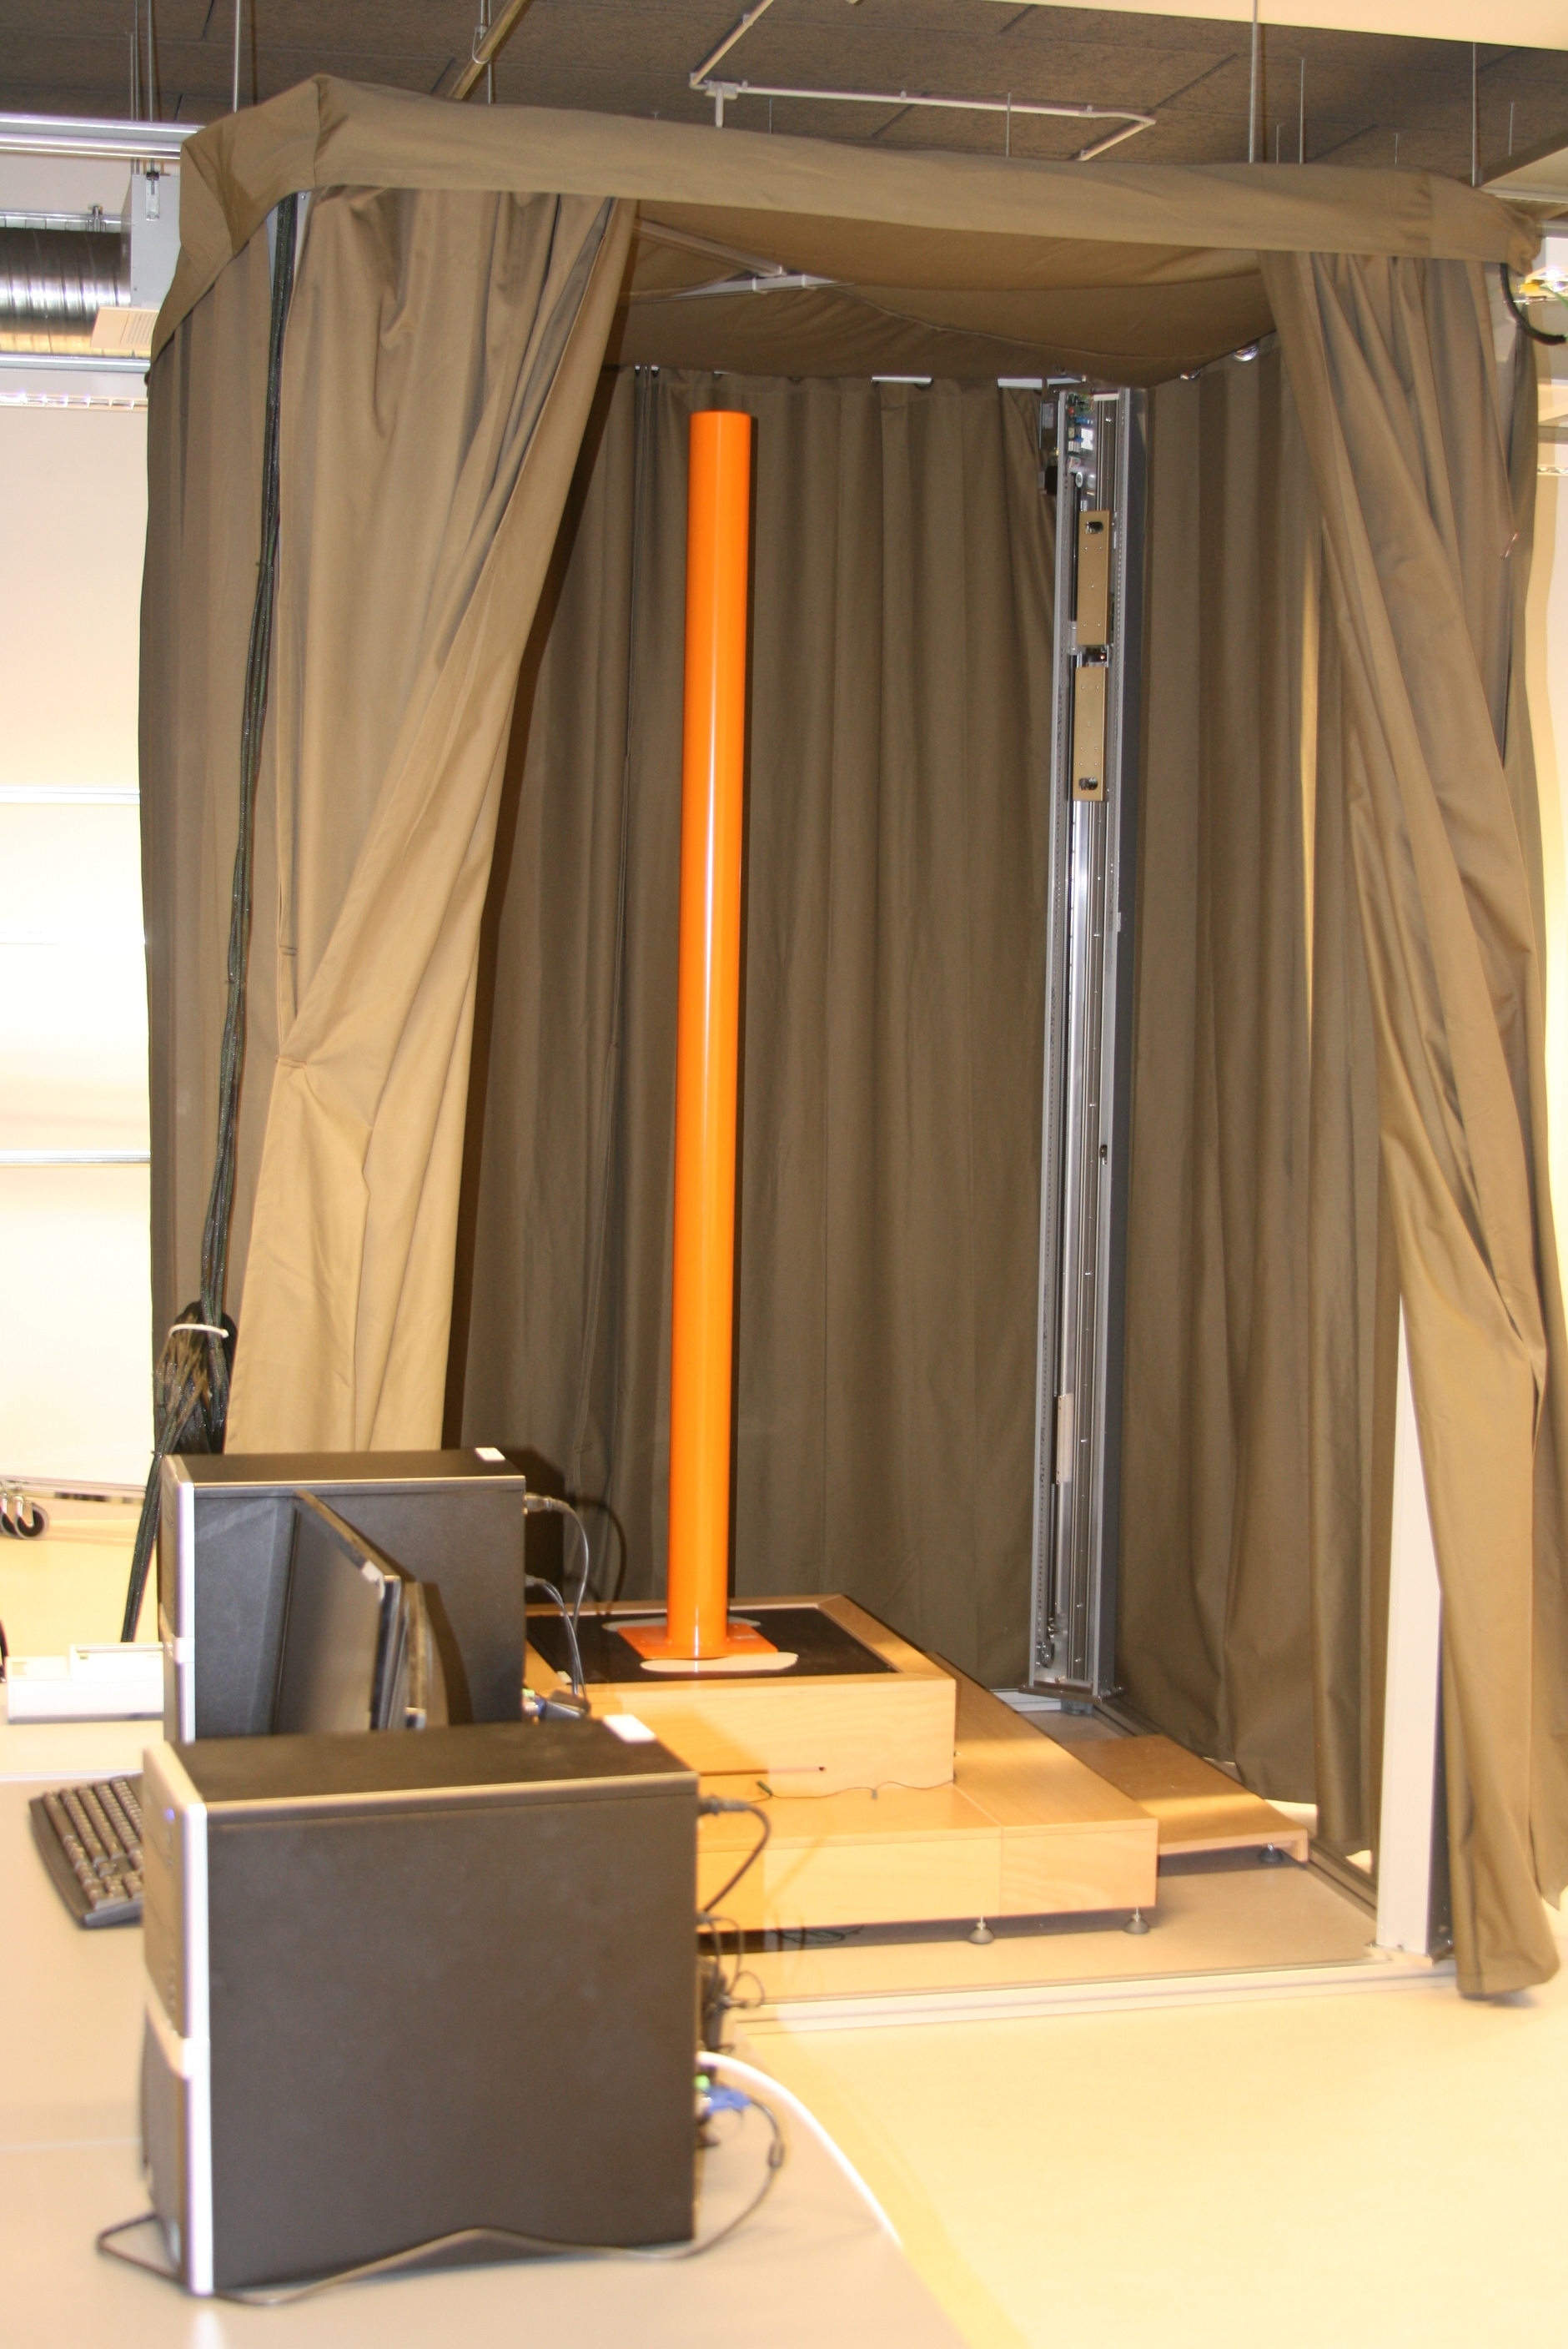 Optical measurement device - 3D body scanner